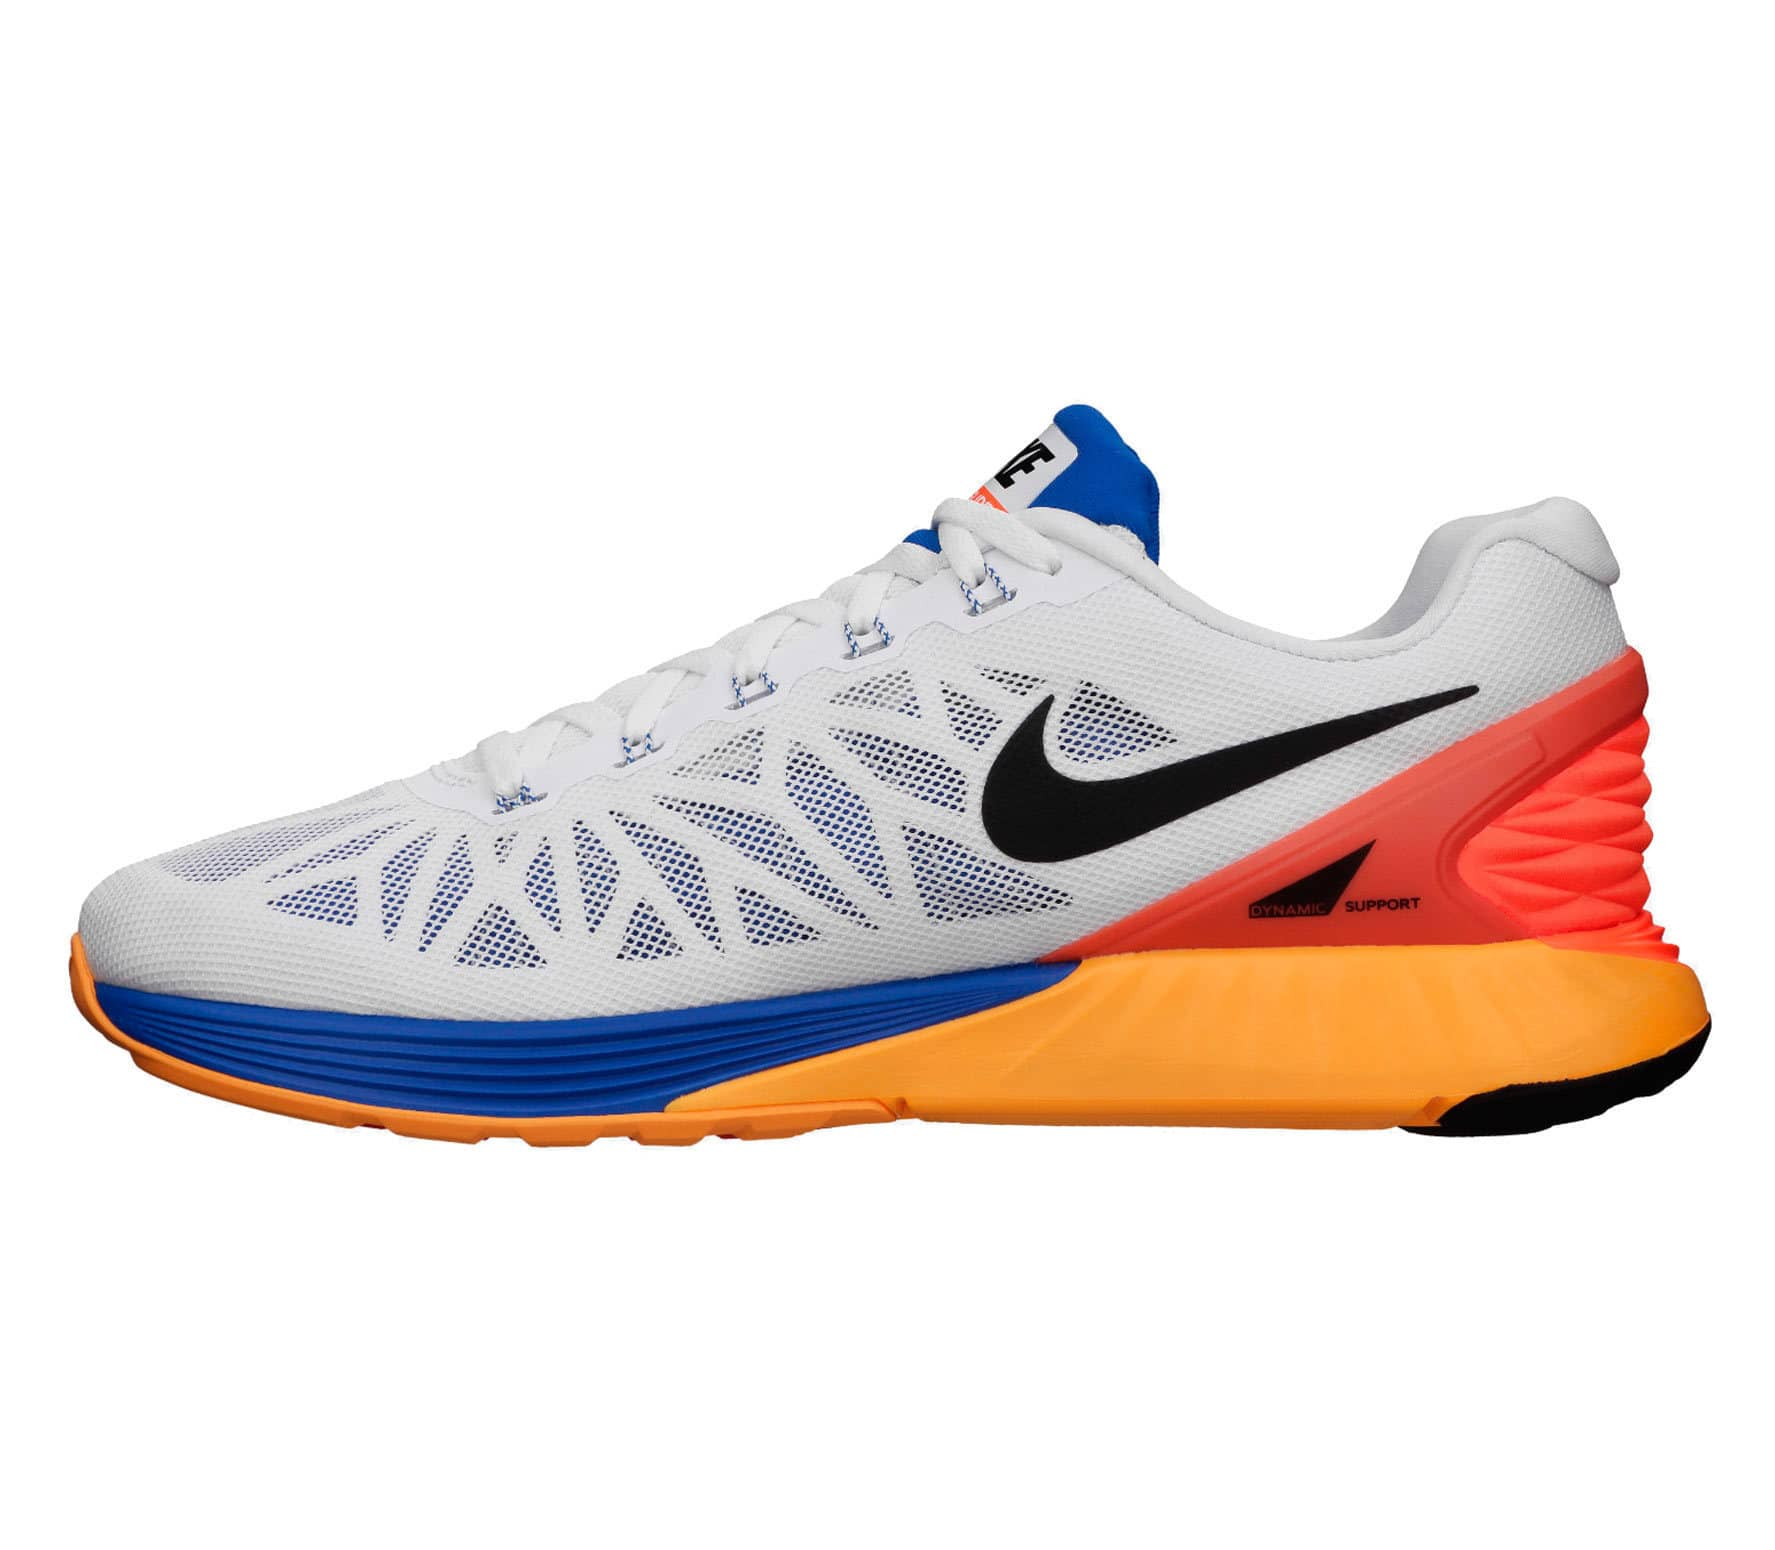 7dedb90333b66 ... cheapest nike lunarglide 6 mens running shoes white red blue 1beca af43b